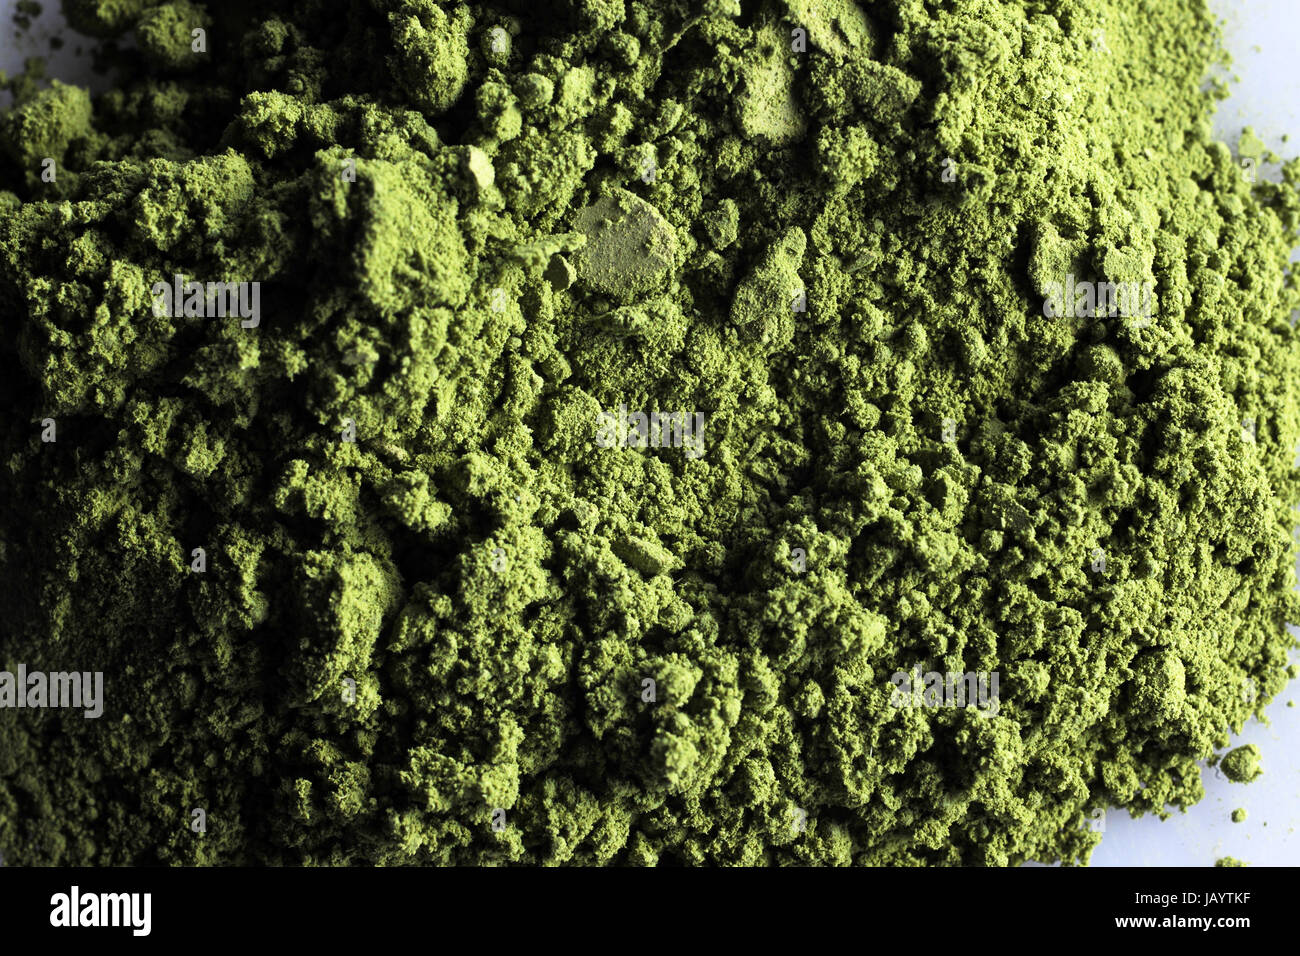 matcha powder green tea with white background - Stock Image